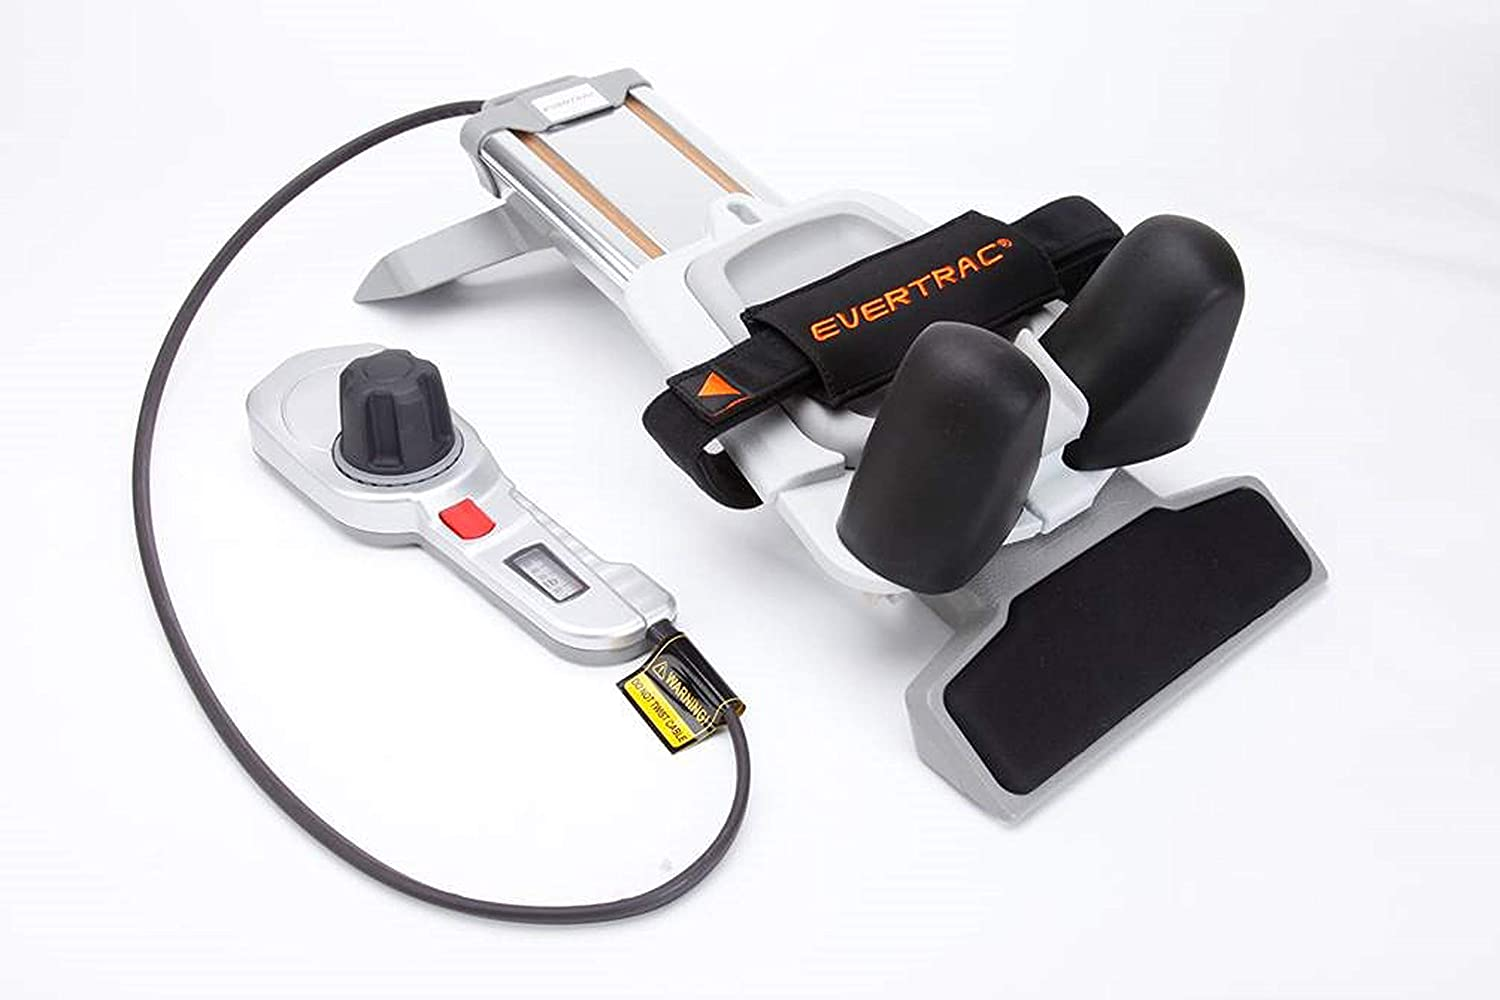 Evertrac - Cervical Traction Device